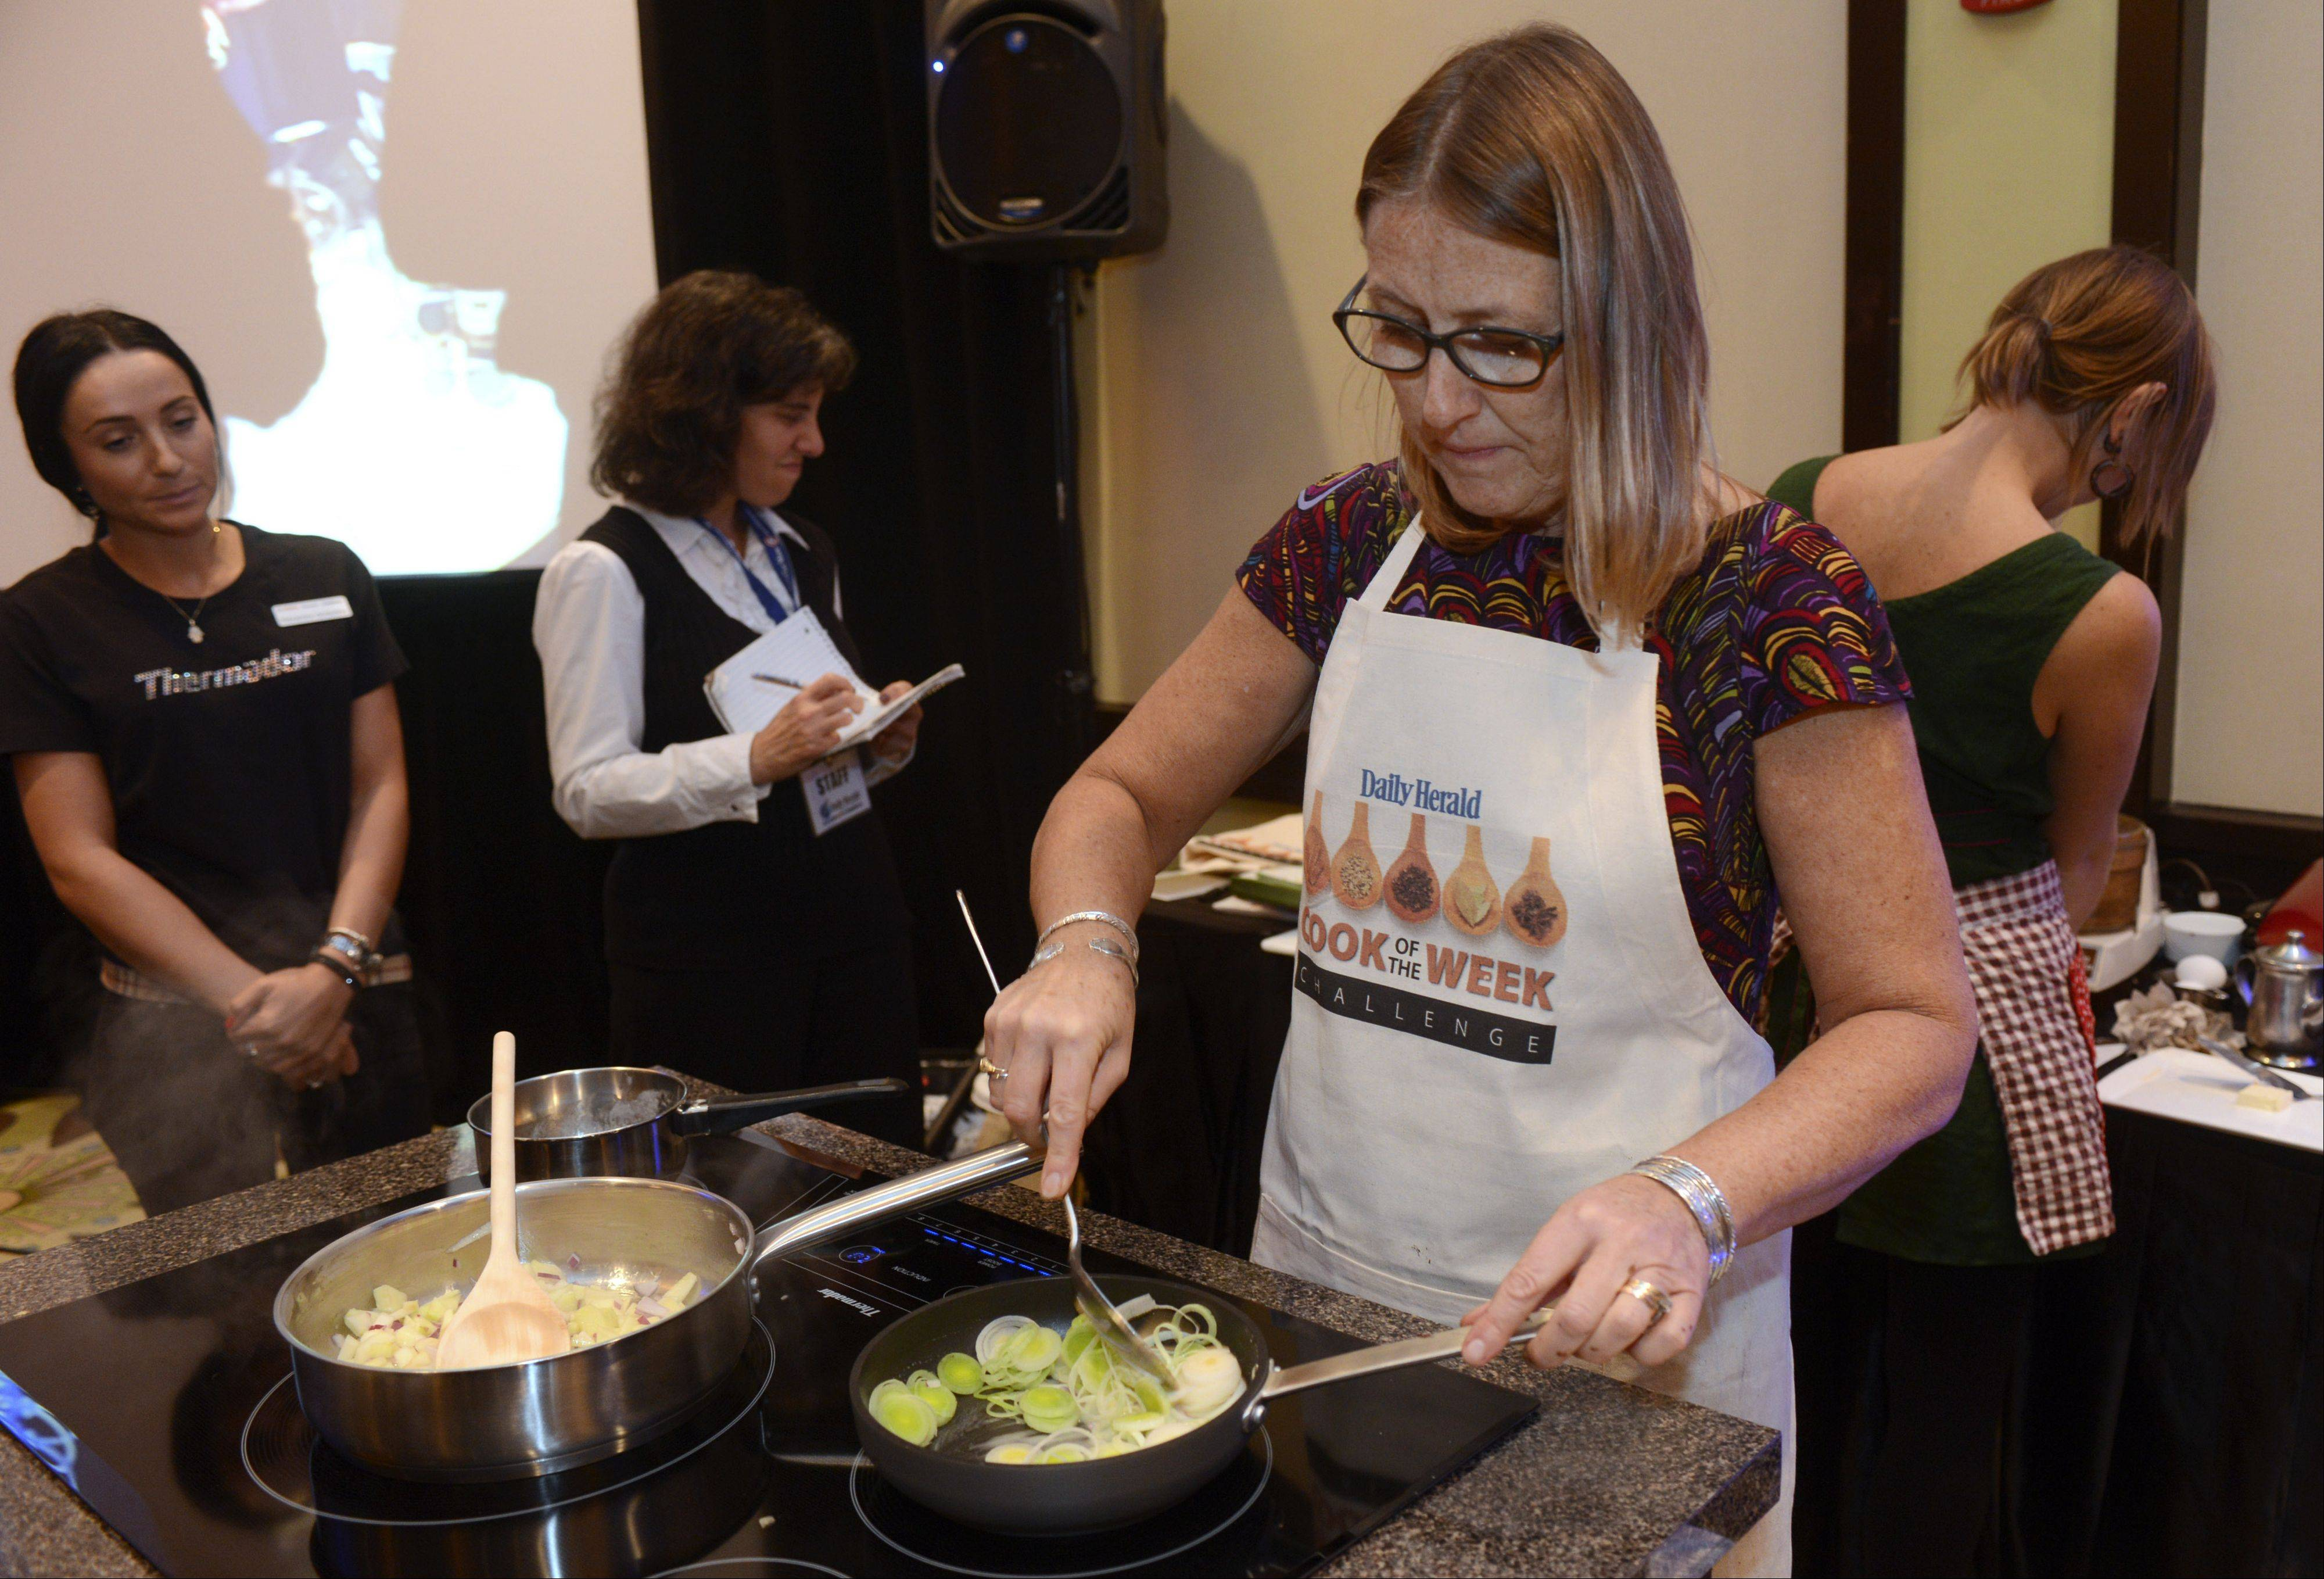 Christine Murphy of Palatine cooks during the Daily Herald Cook of the Week Cookoff finals, held at the Hyatt Regency Schaumburg Wednesday.